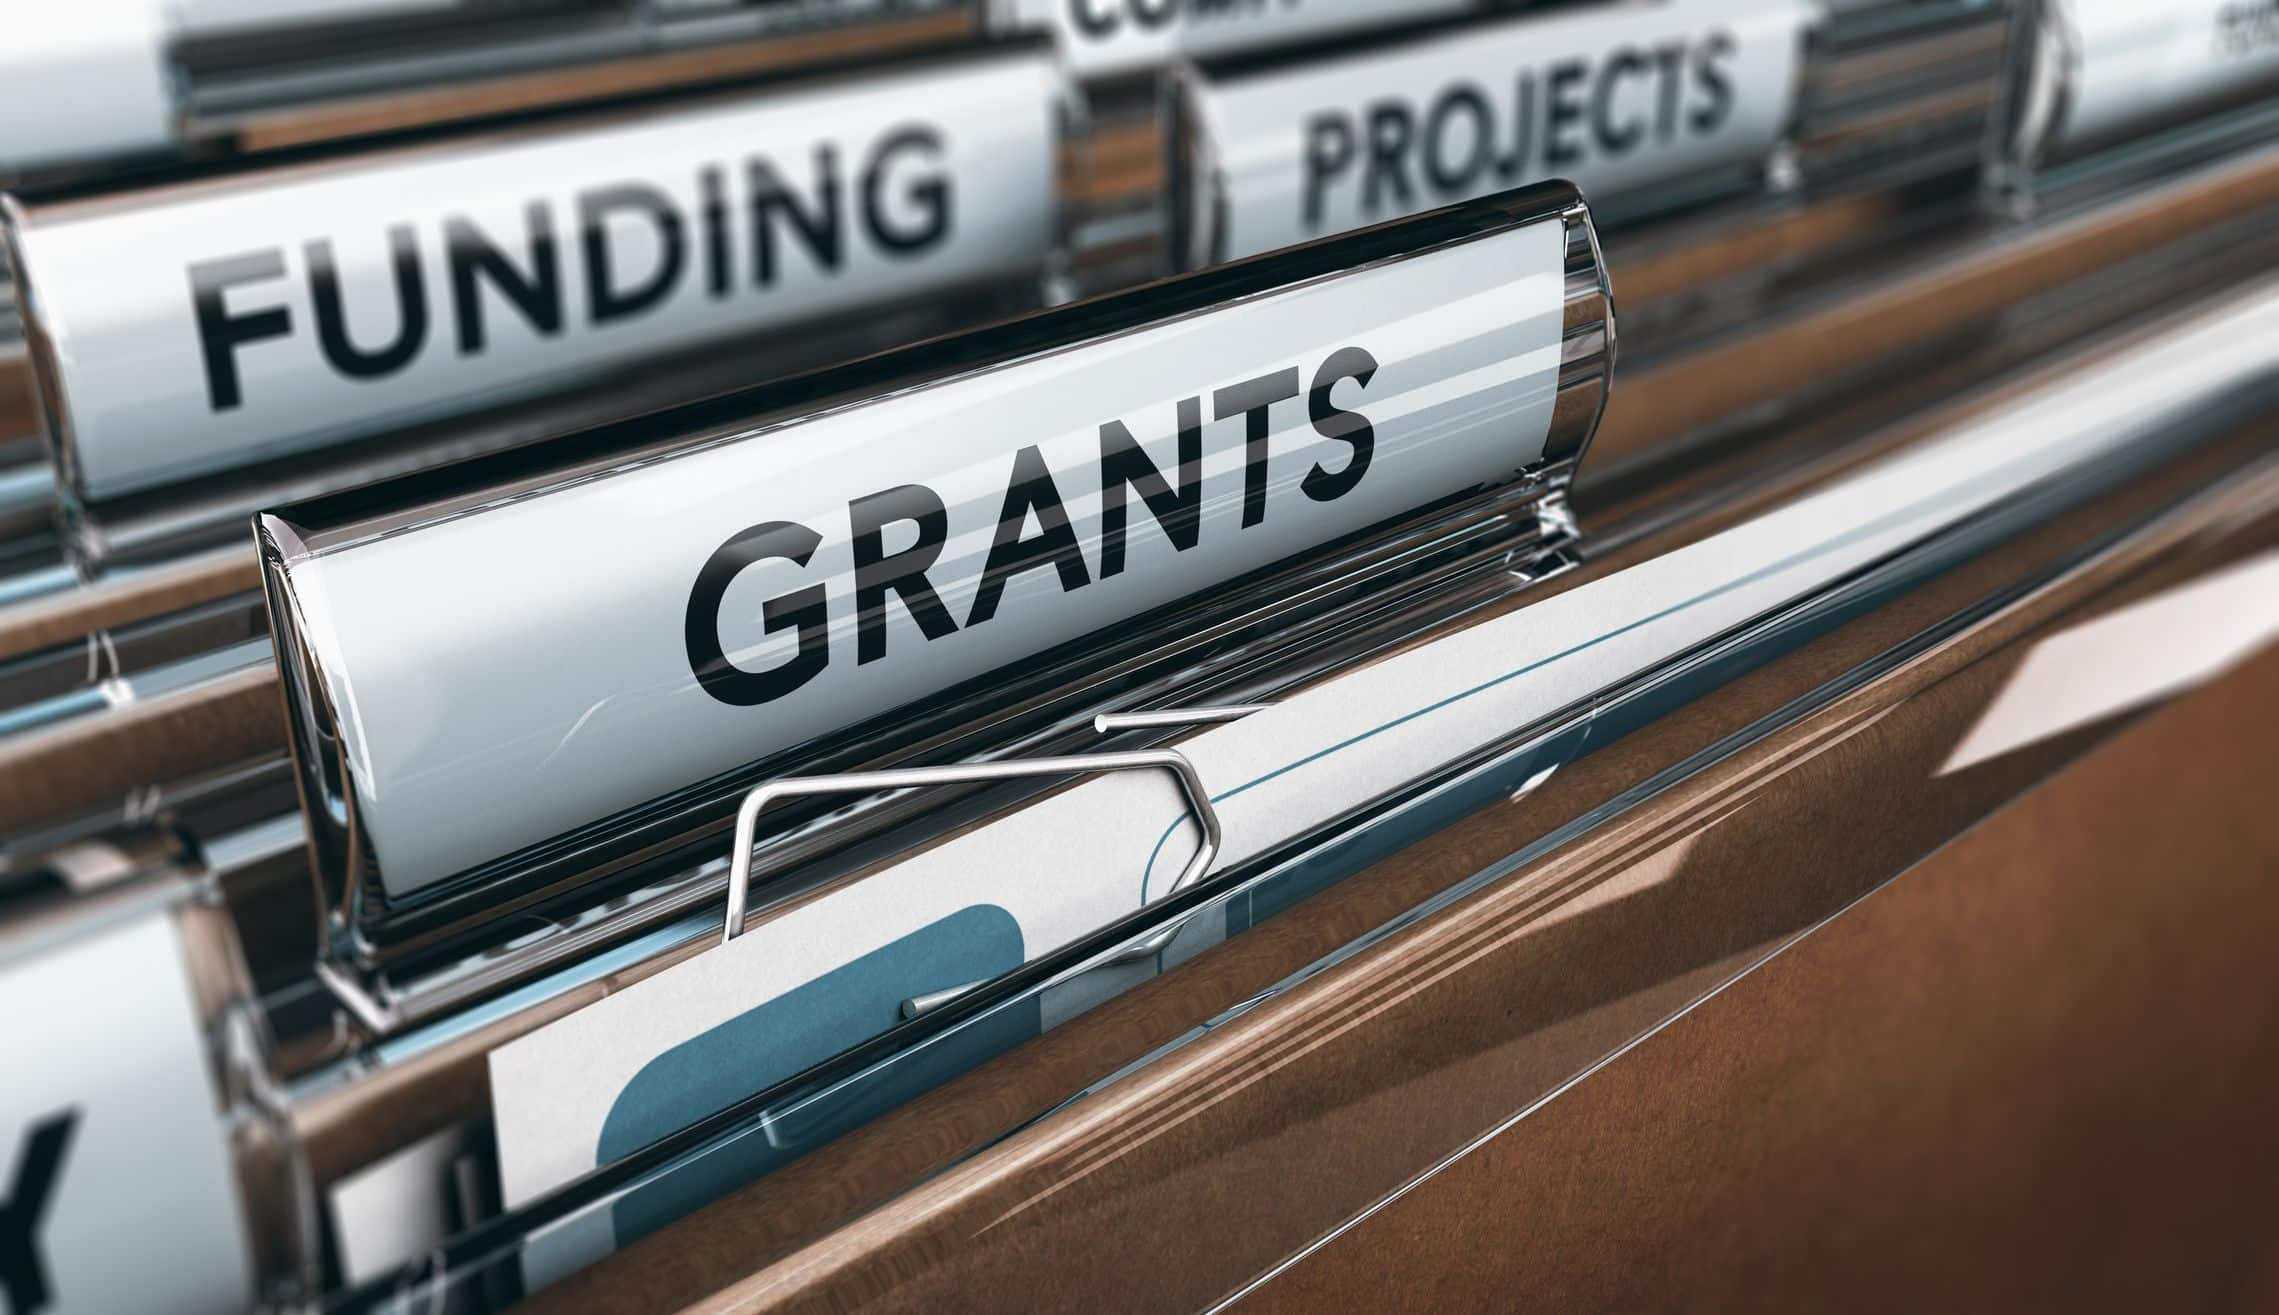 International Grants for individuals in Africa